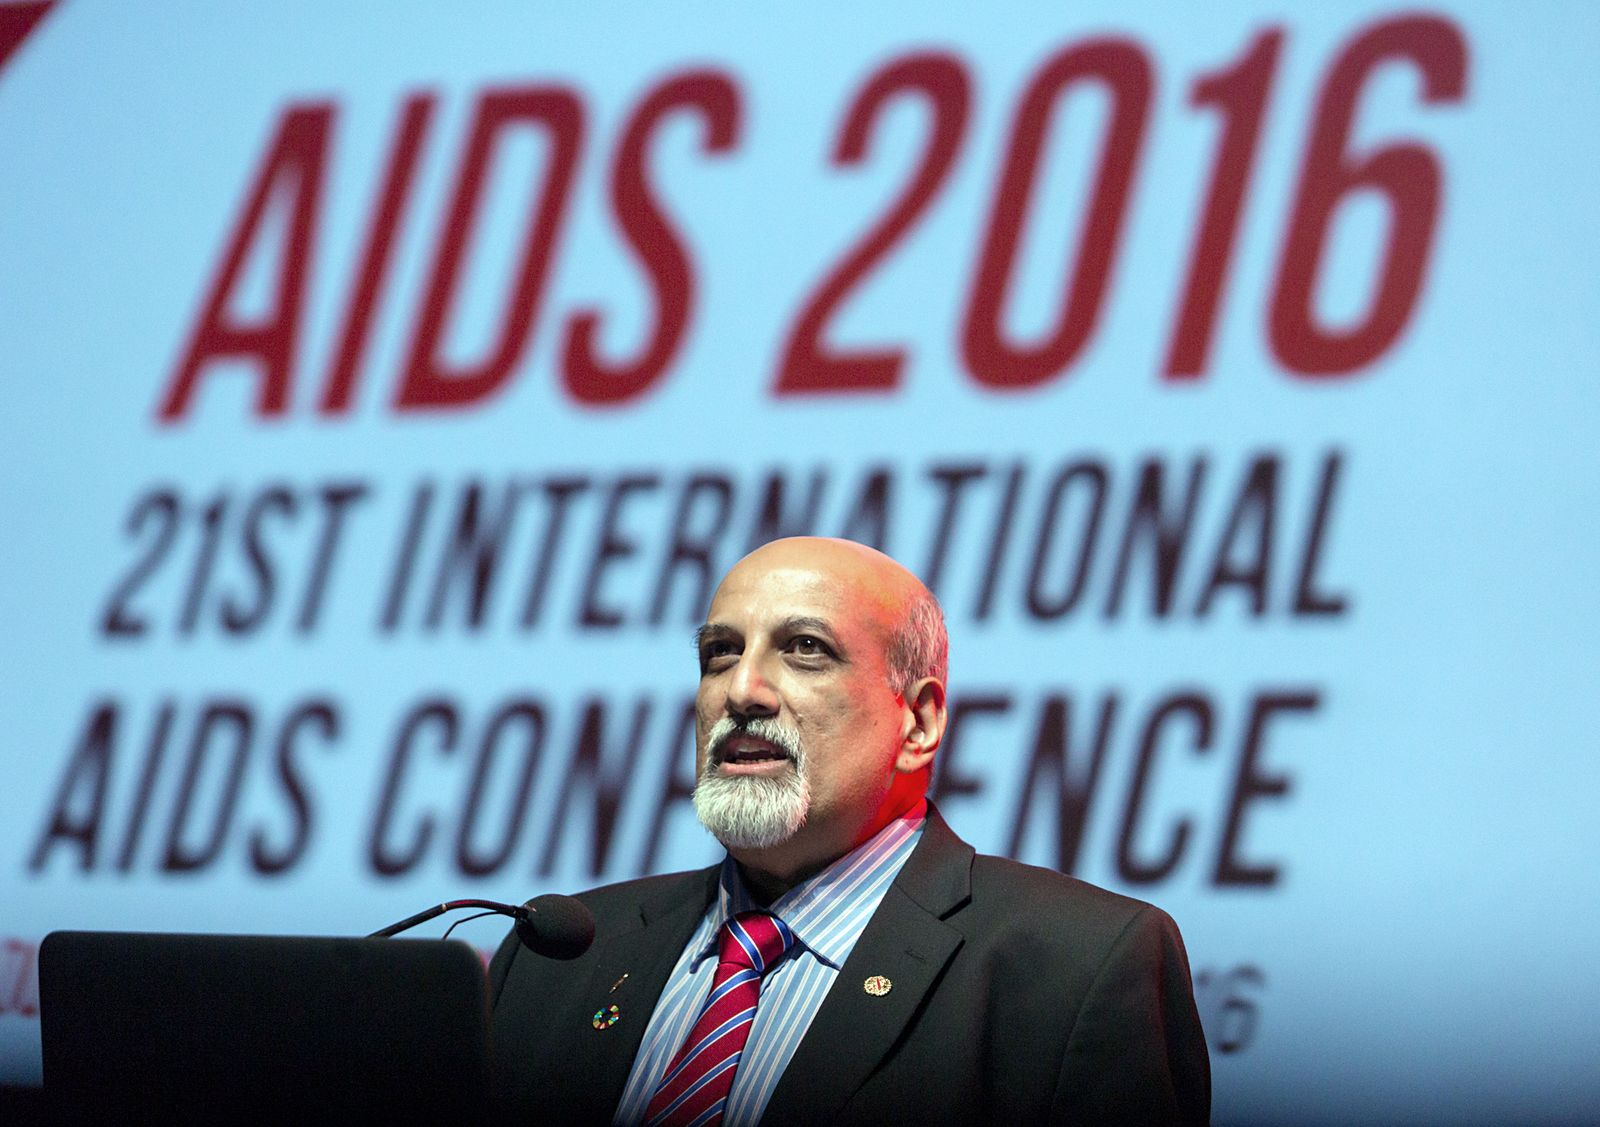 SAFRICA-HEALTH-AIDS-CONFERENCE